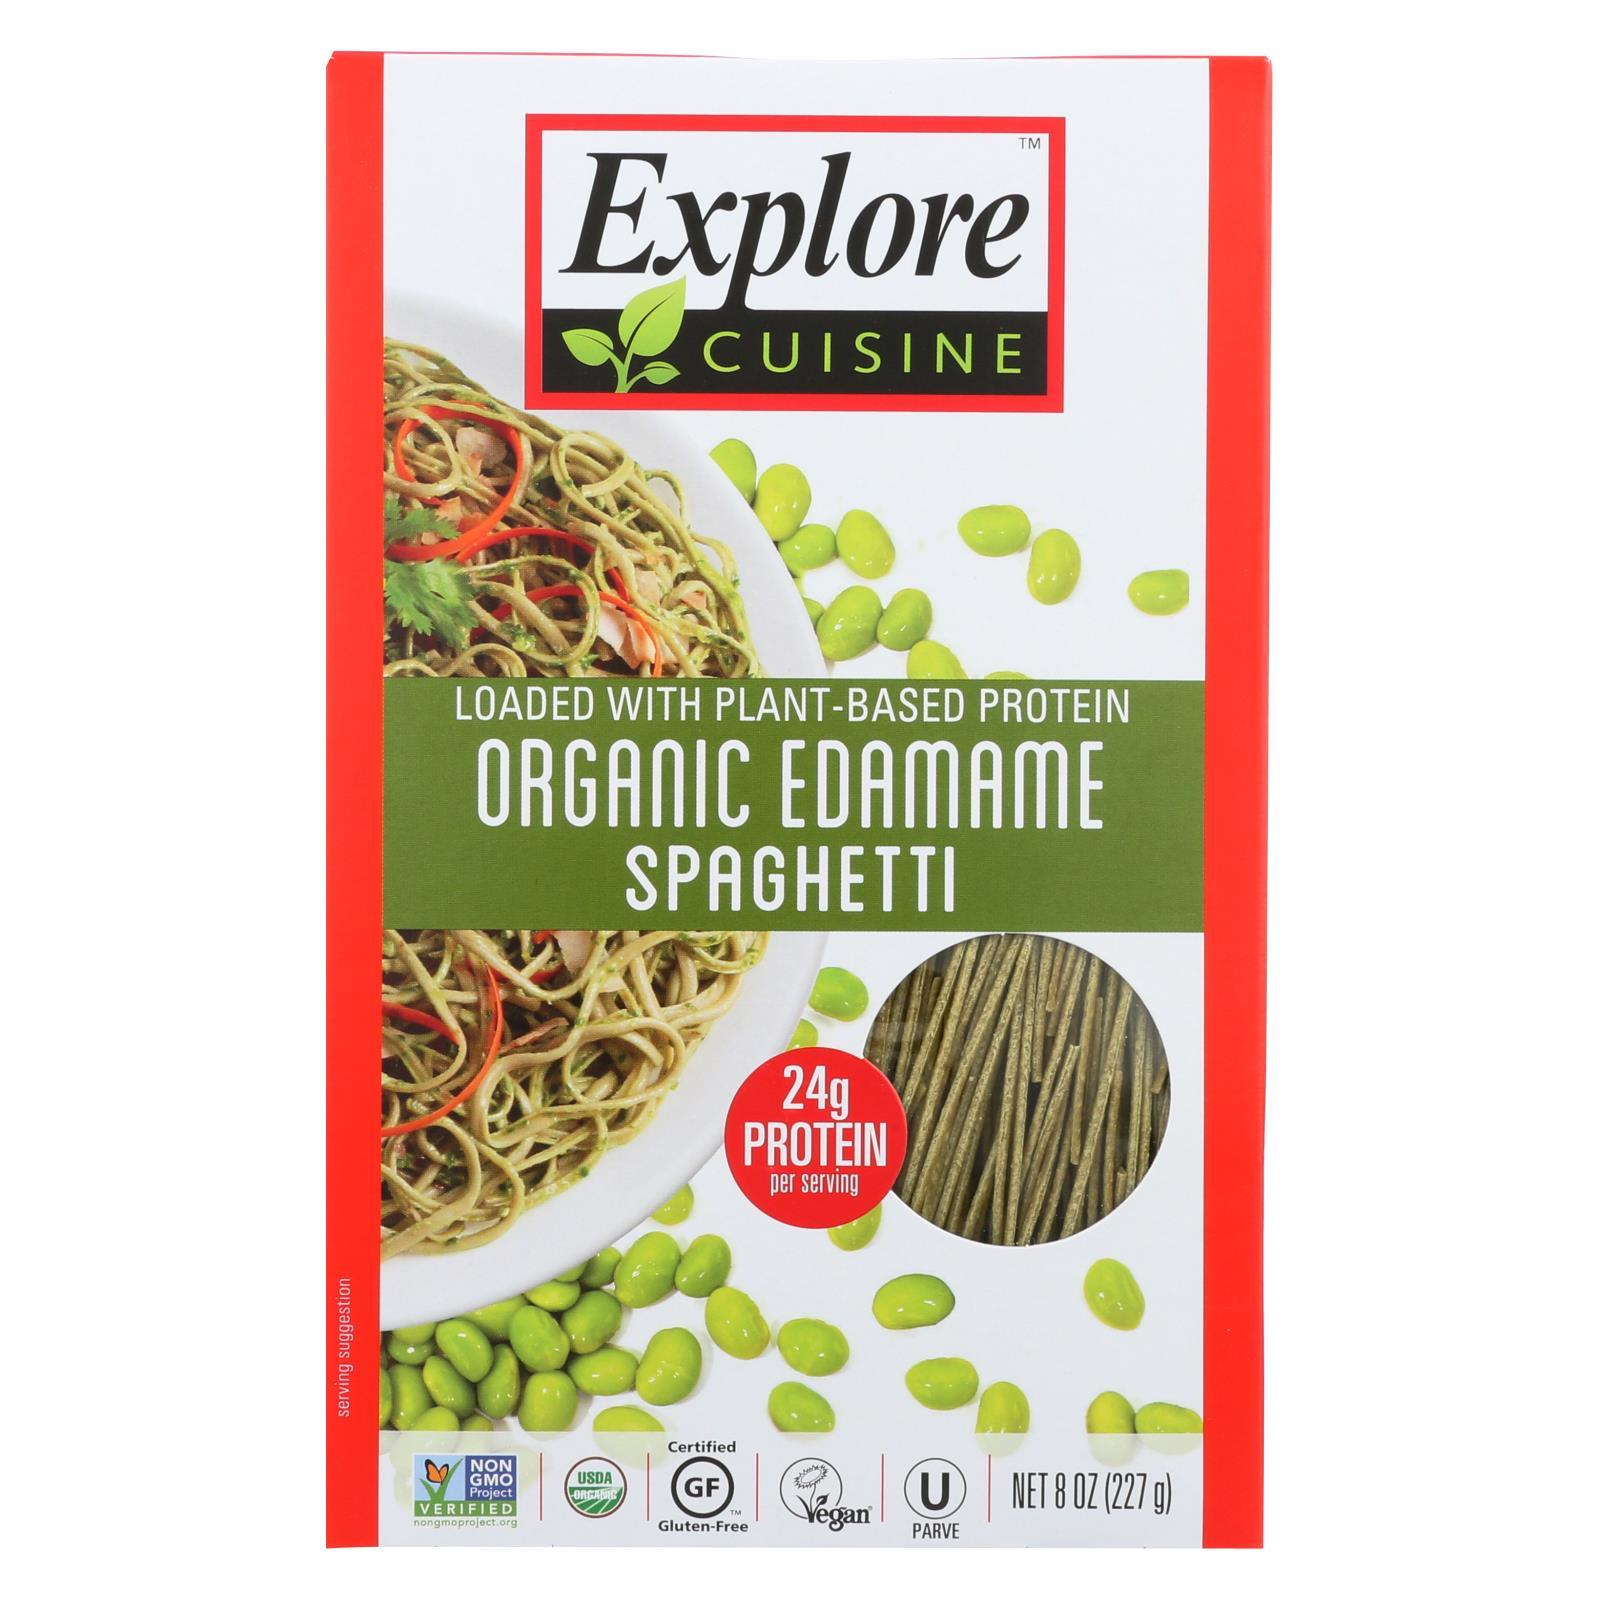 Organic Edamame Spaghetti By Explore Cuisine 1 Ingredient Green Soybeans With Images Edamame Spaghetti Pasta Substitute Pasta Alternative